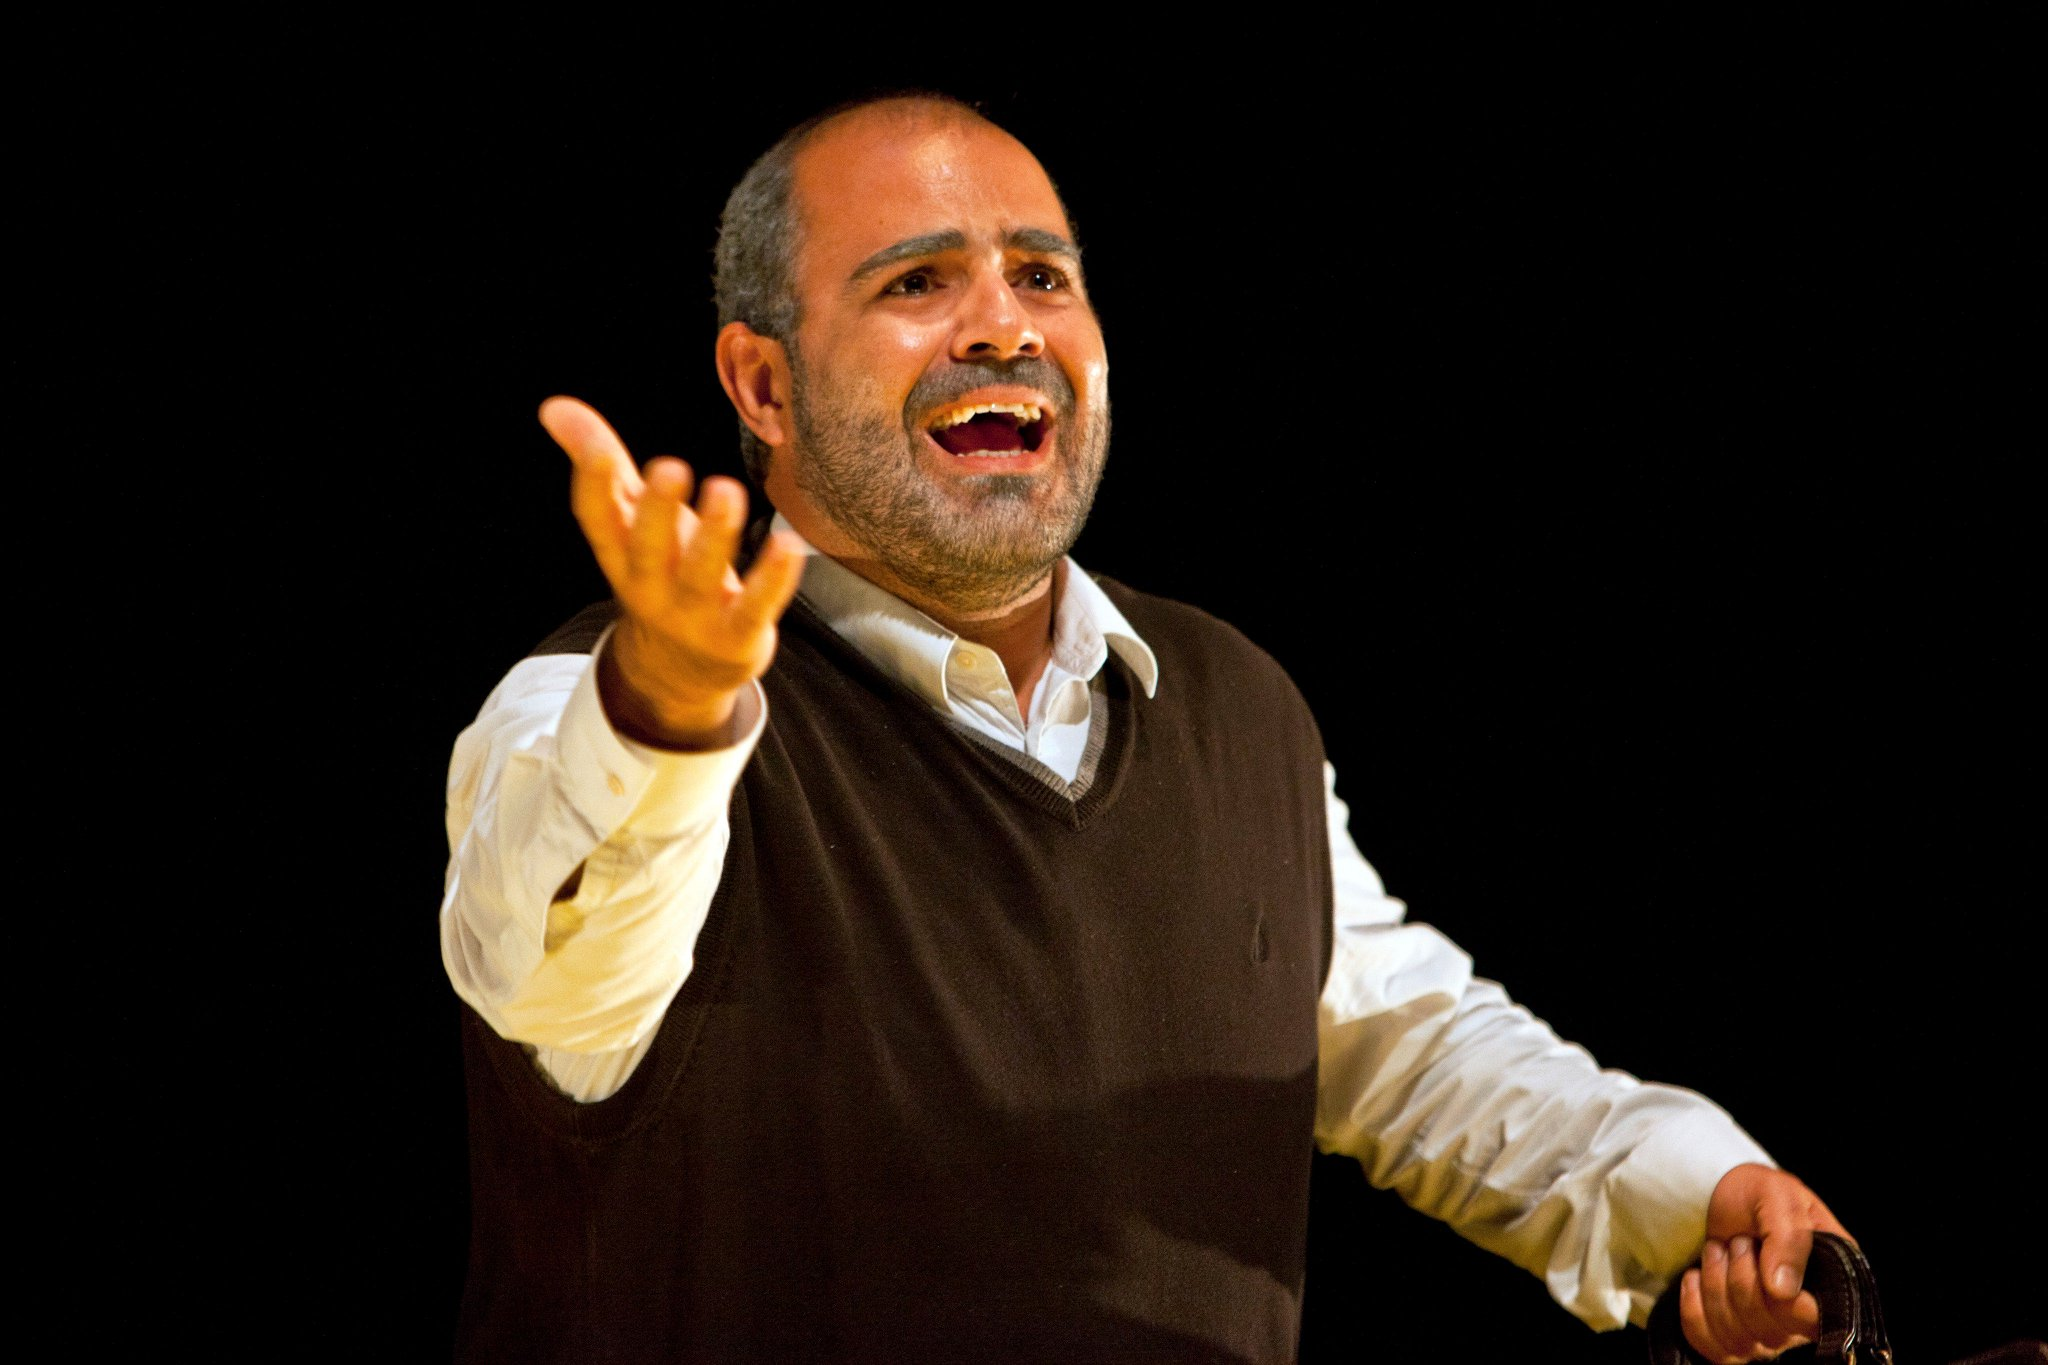 """@Independent @shubbakfestival @standardnews """"A simple but well-crafted biographical portrait of an ordinary man who made himself into something more."""" @BritTheatreGuid #Taha https://t.co/WxEp4pTPne"""